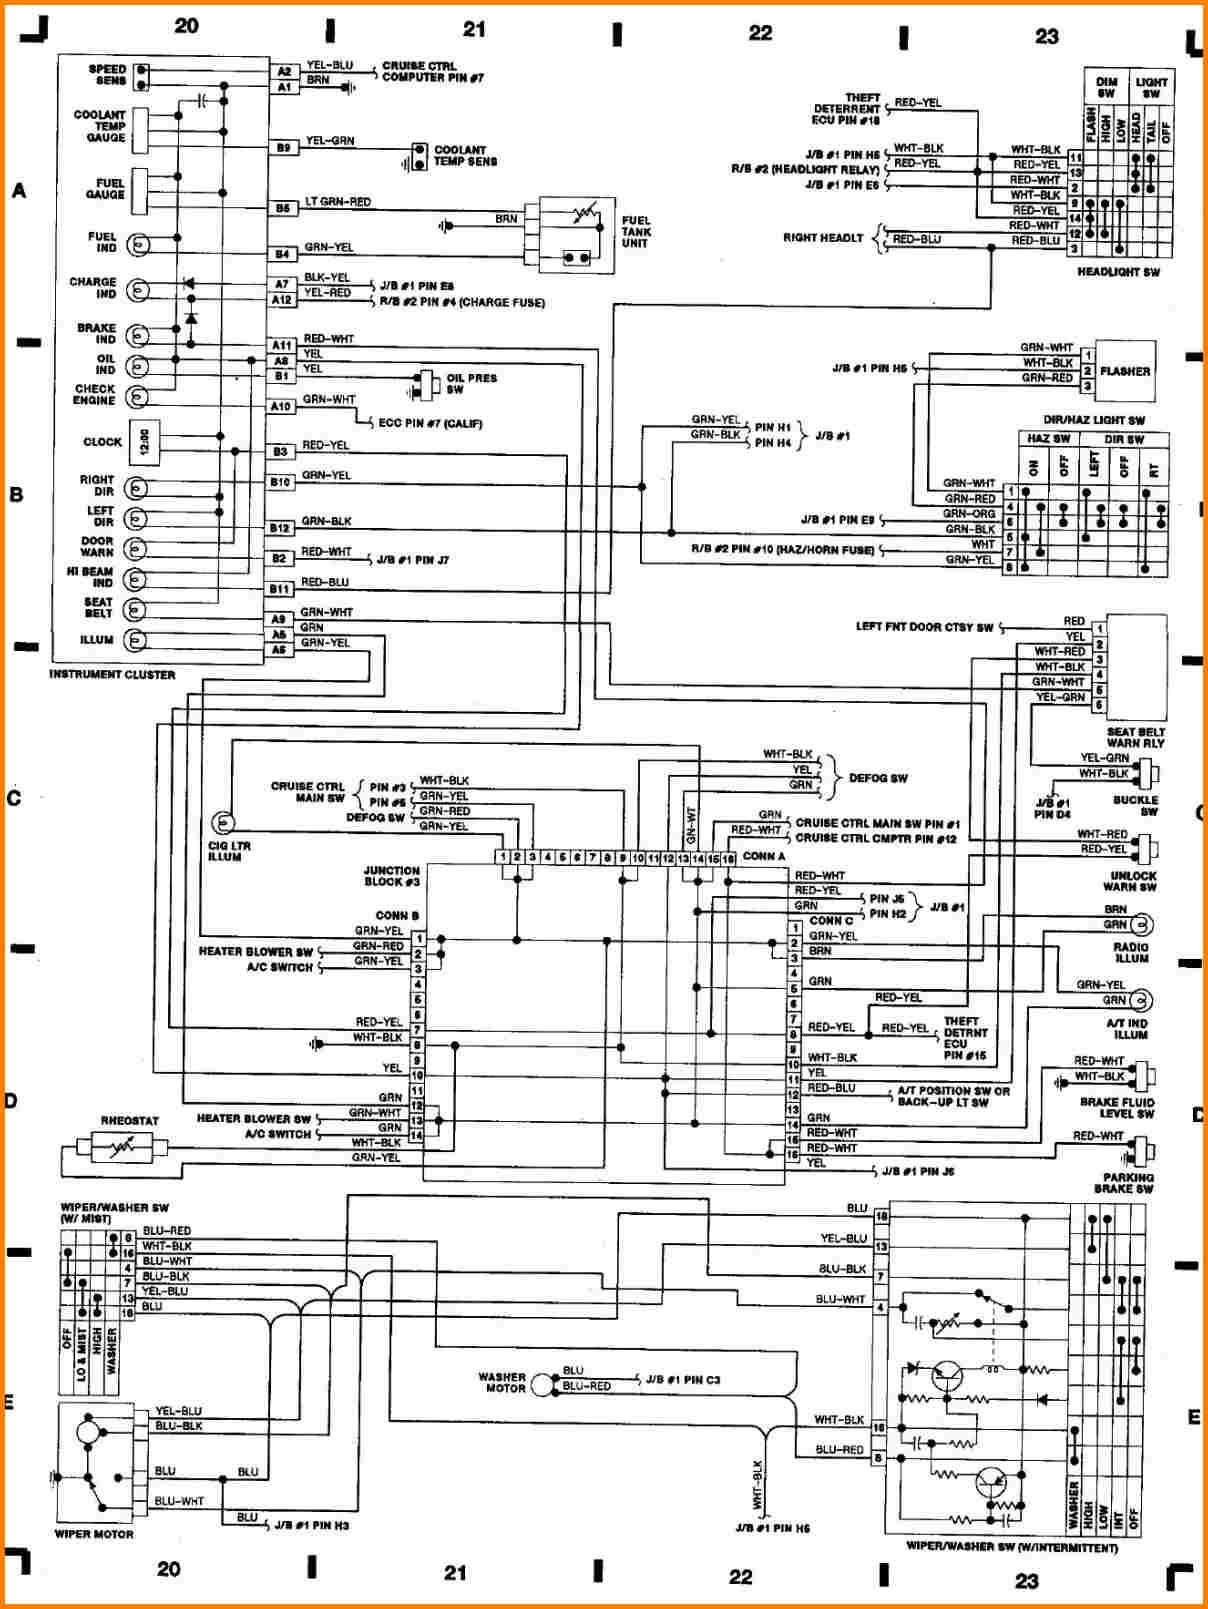 Diagram 2015 Toyota Tundra Stereo Wiring Diagram Full Version Hd Quality Wiring Diagram Diagrammatix Bioareste It